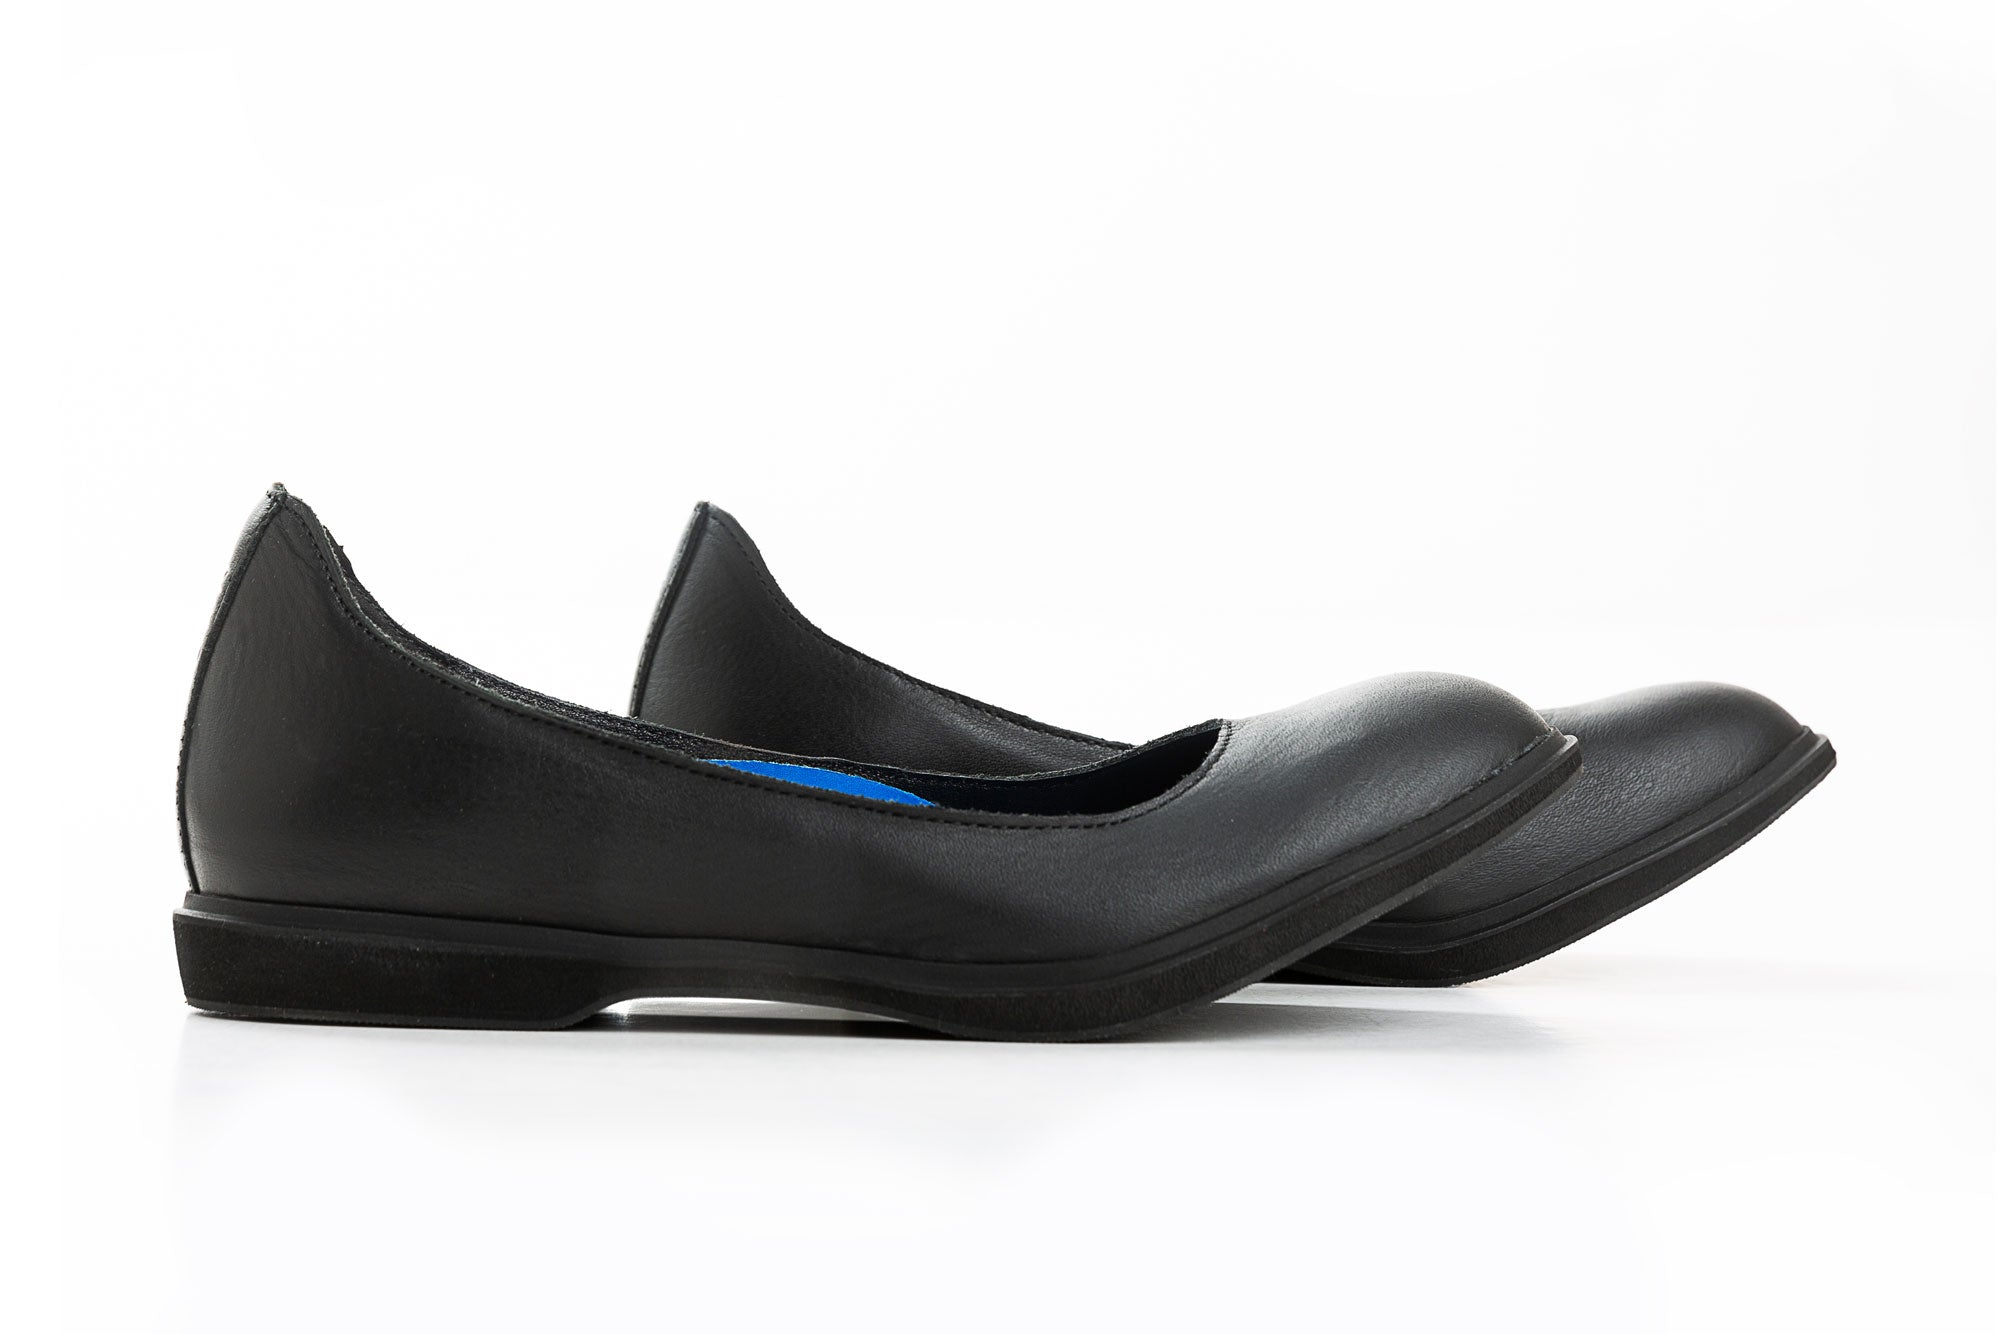 caa73312c5 ... Most Comfortable Womens Flats For Work - MARATOWN - super cushioned  sole - most comfortable shoes ...